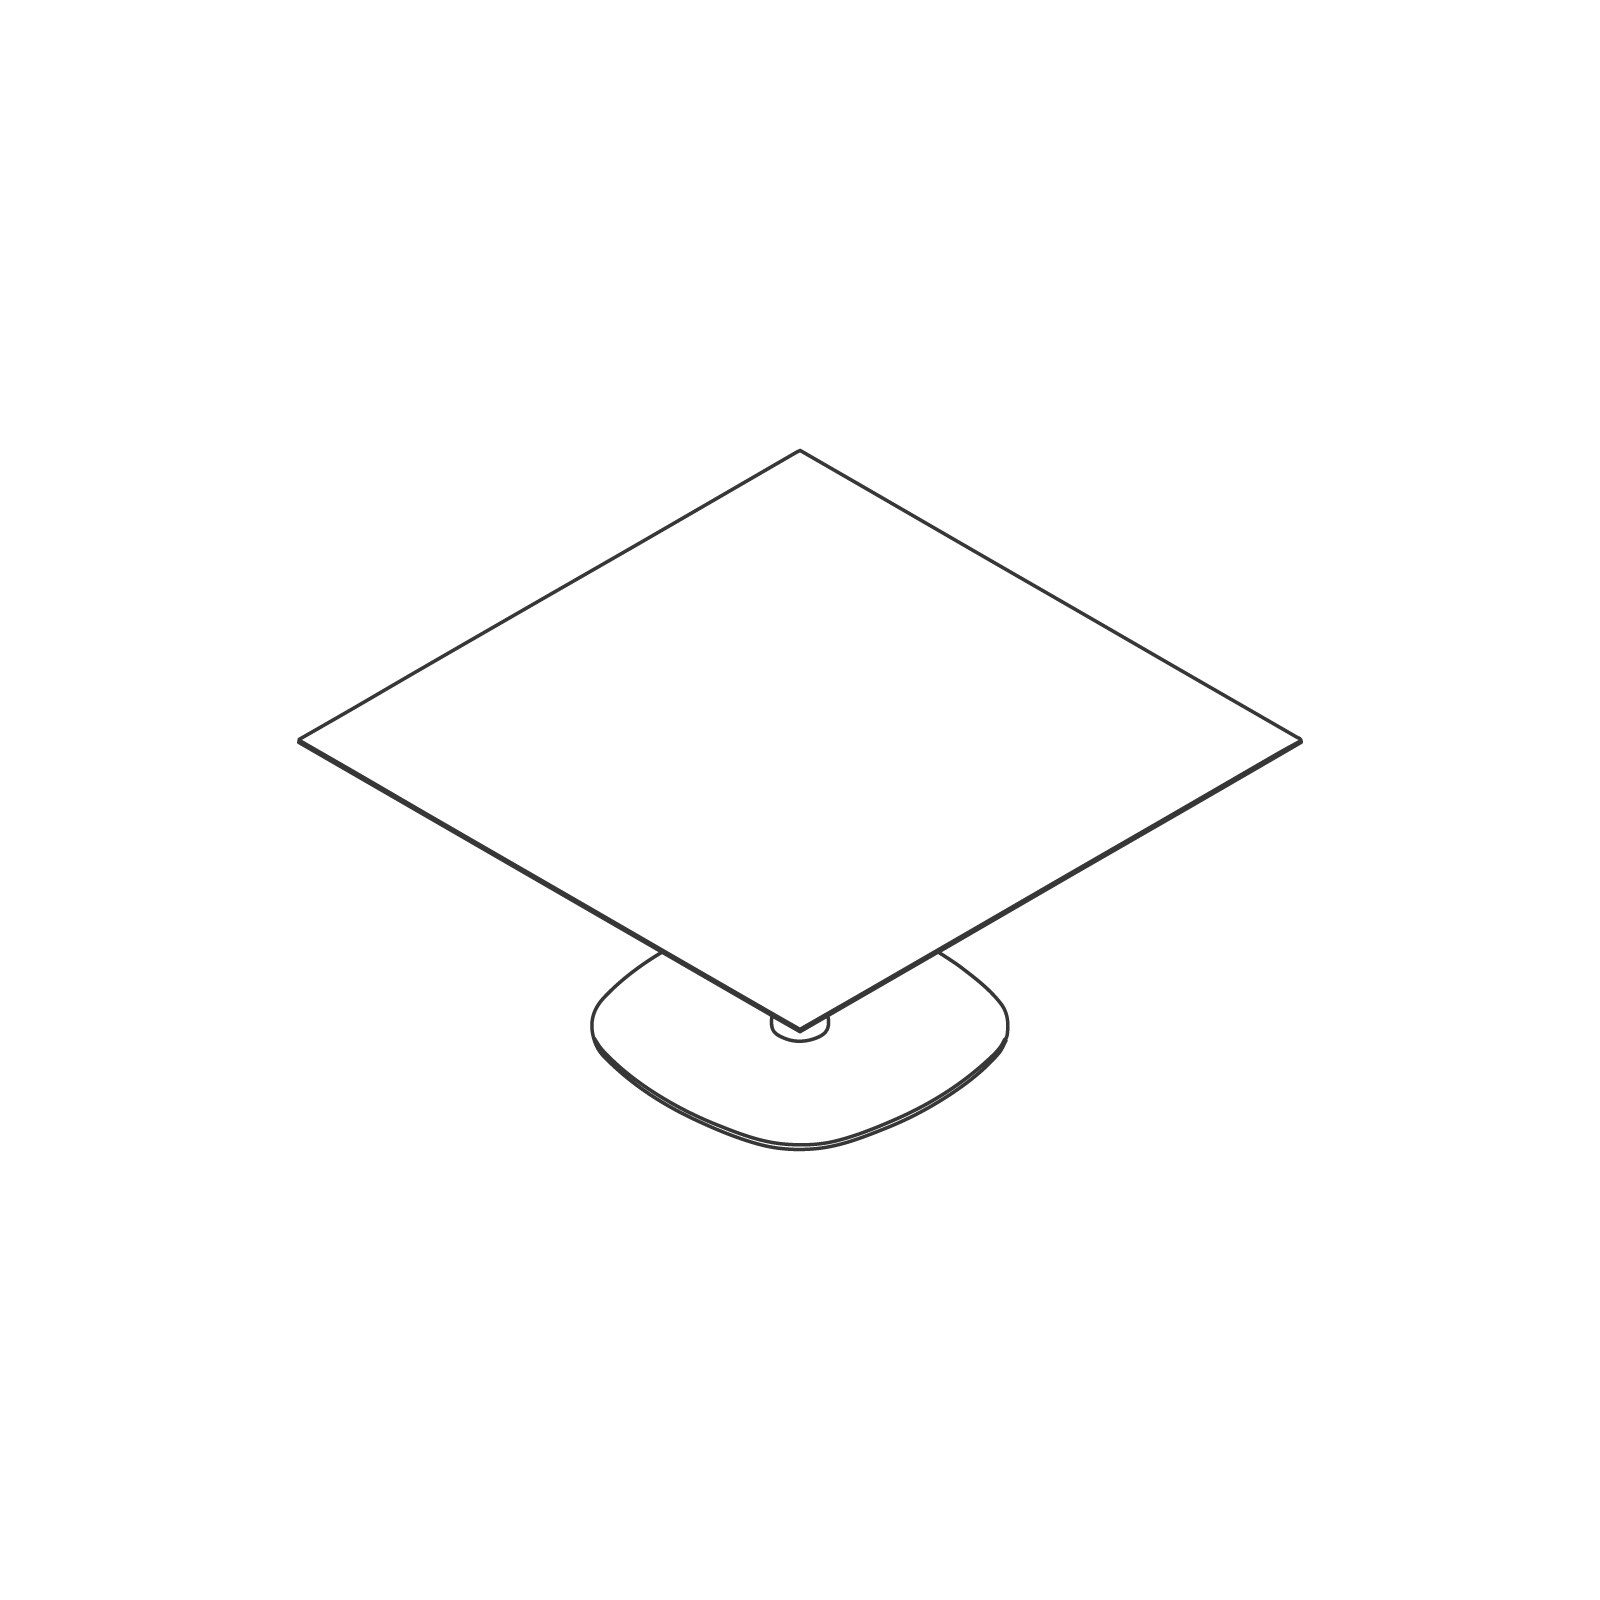 A line drawing of Megaped Table–Square.